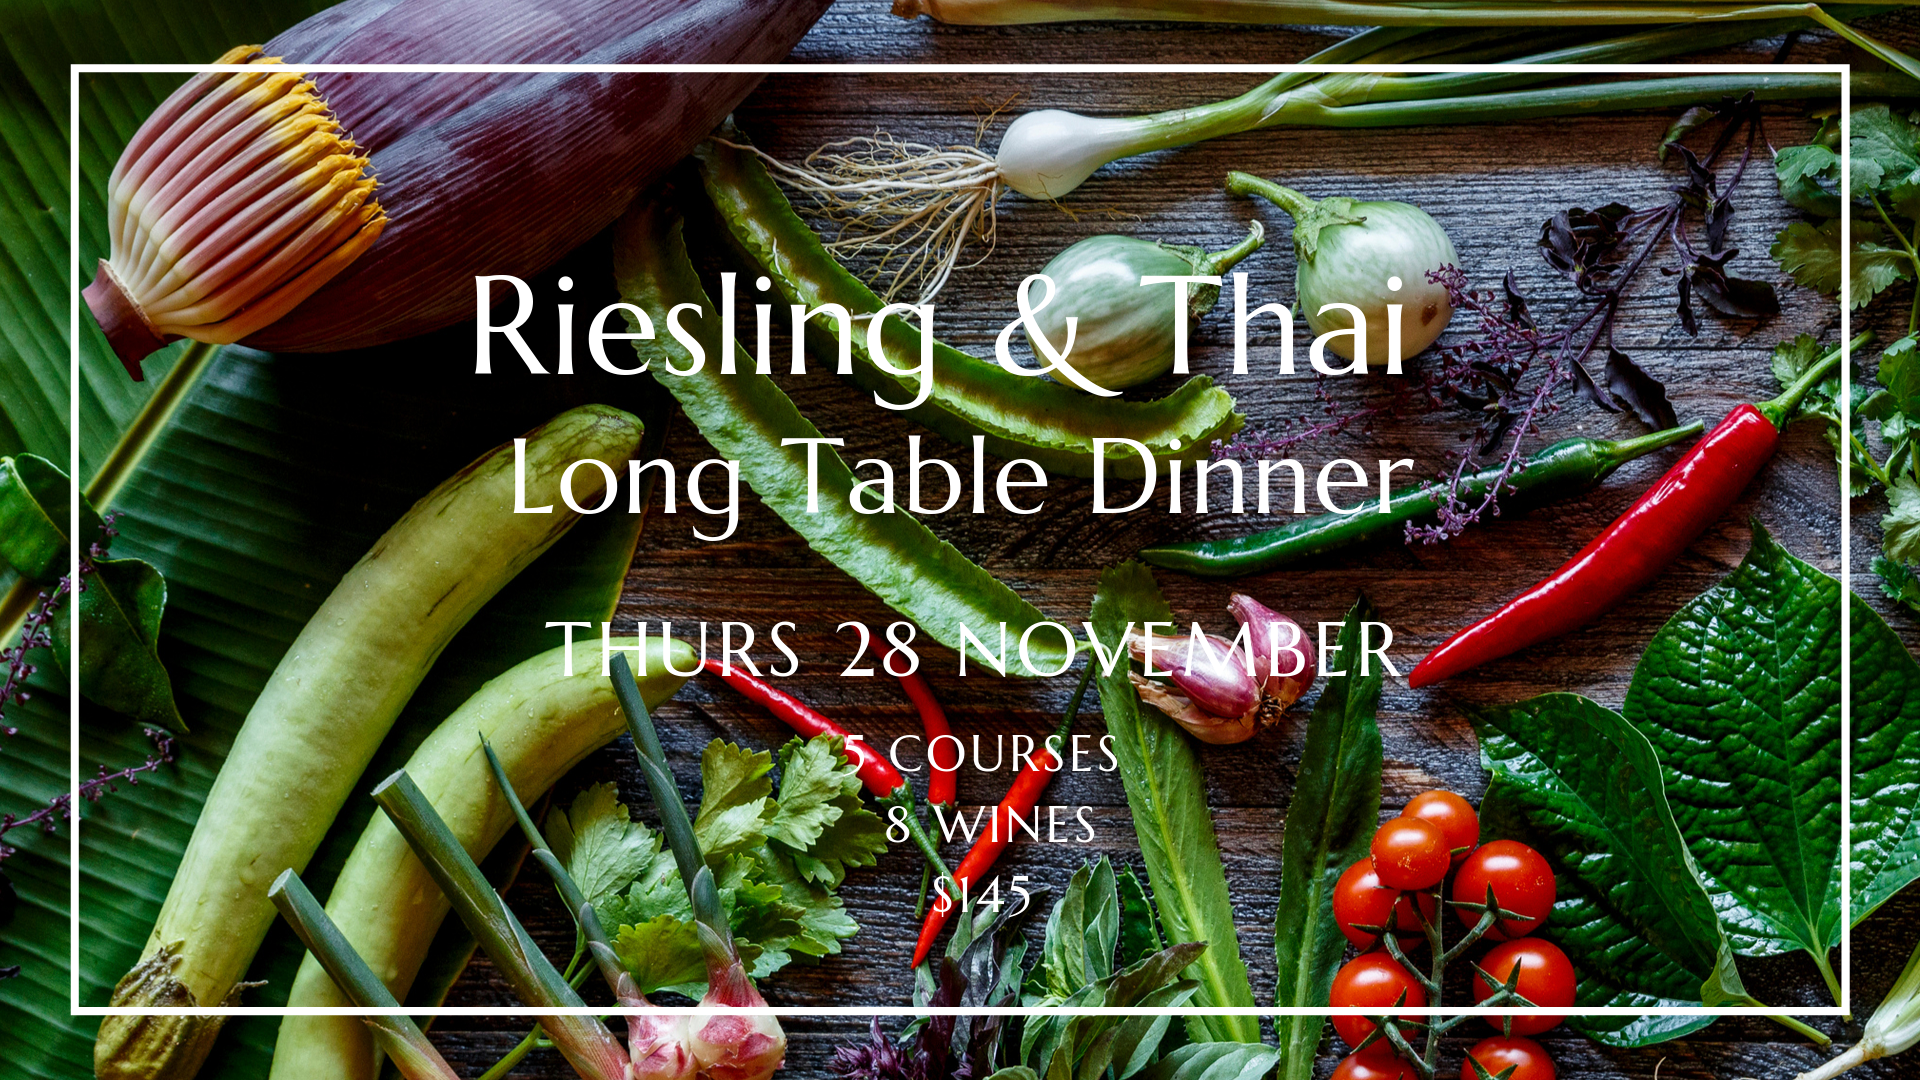 Riesling & Thai Long Table Dinner with Anja Lewis of Canny Grapes, Perth, Itsara Nedlands